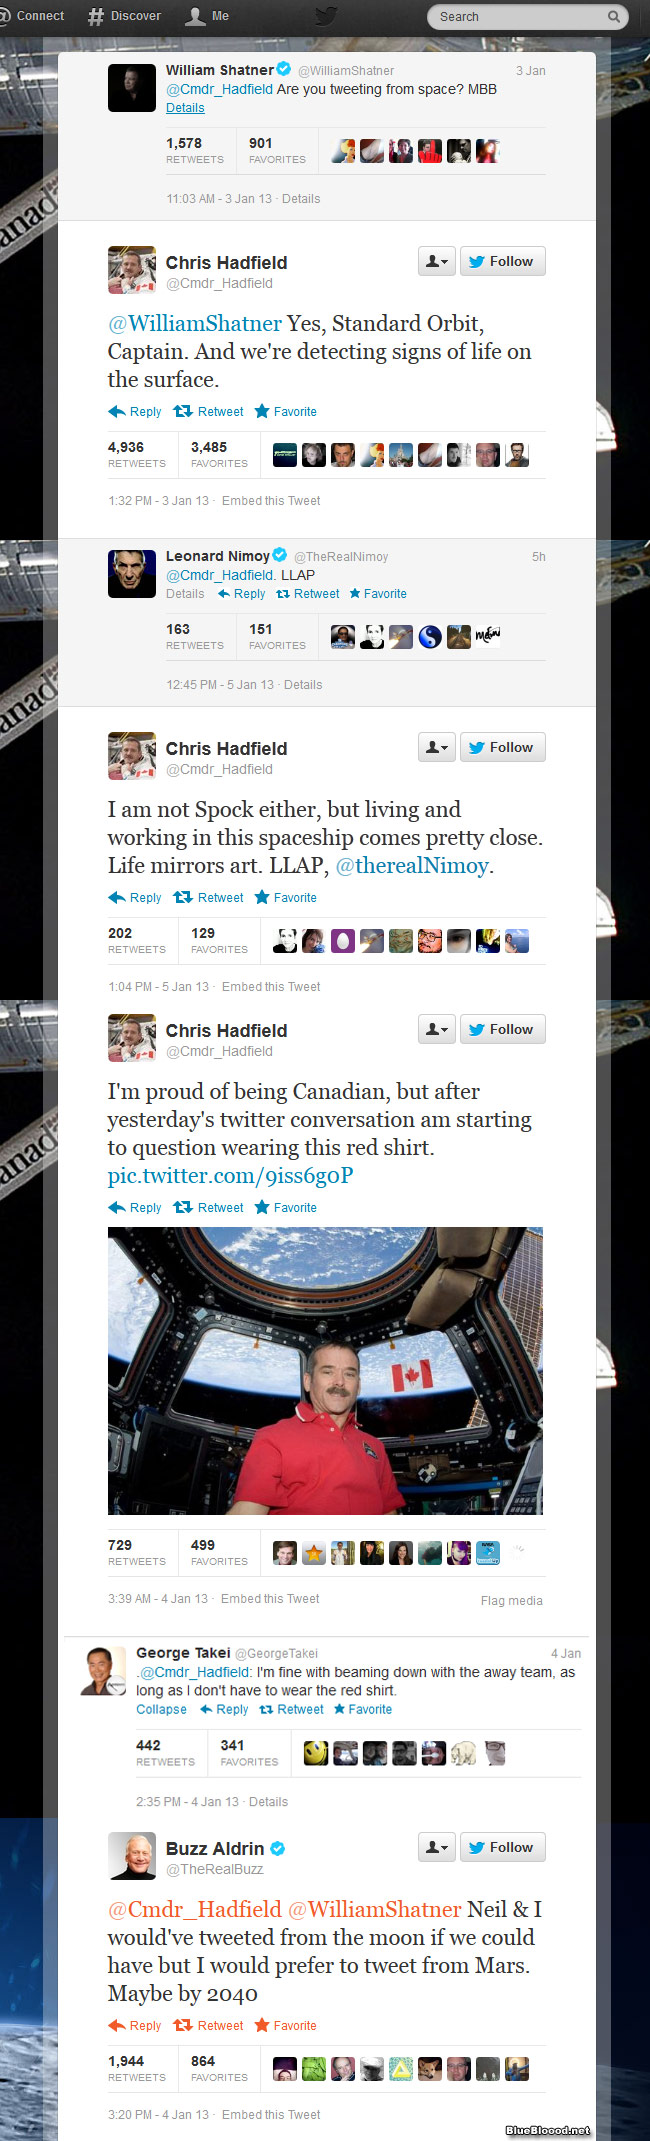 chris hadfield tweeting from space